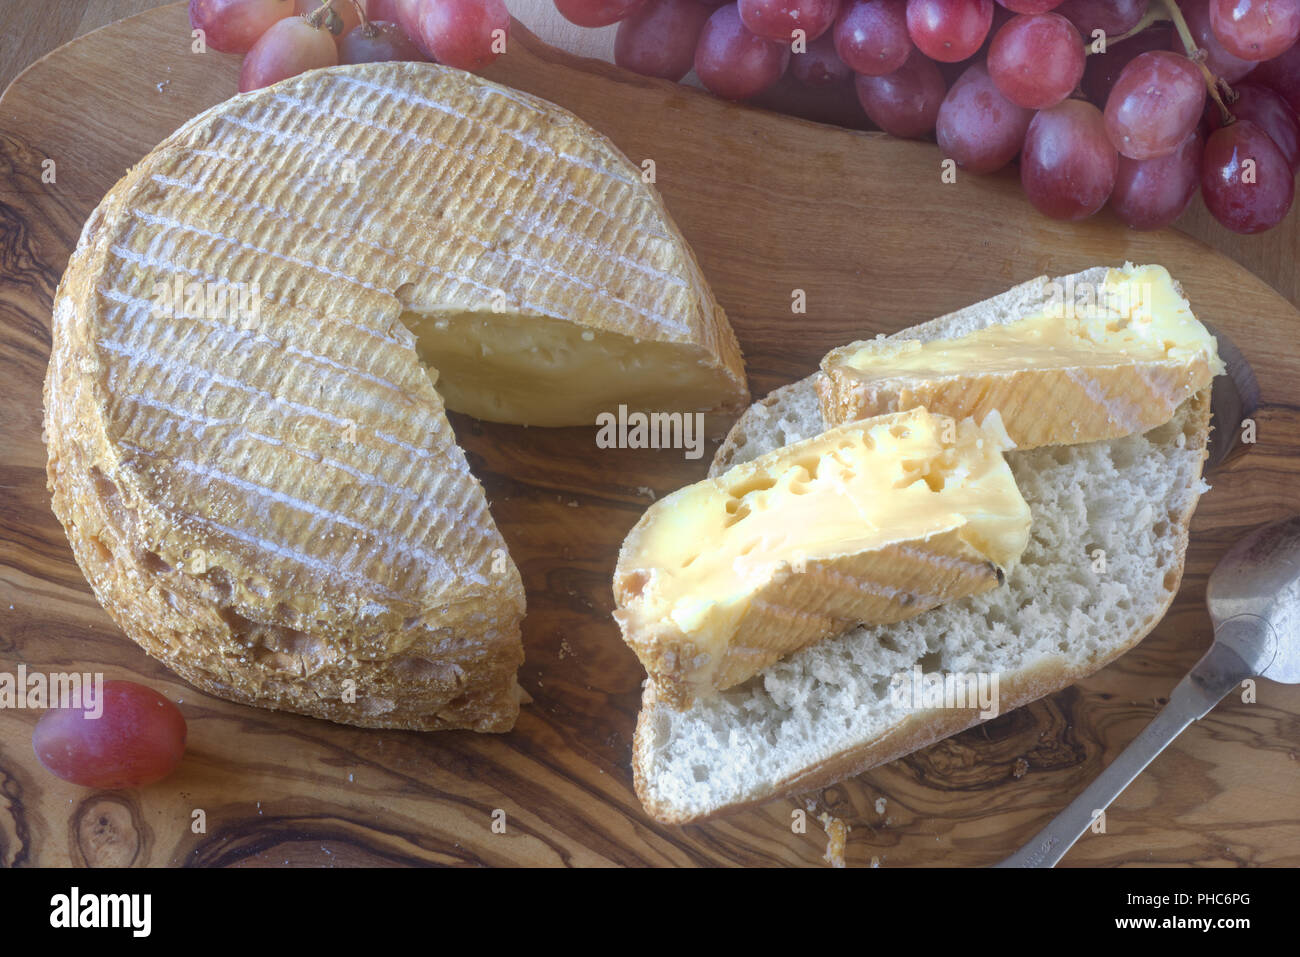 Livarot, French cheese; fromage français de Normandie - Stock Image